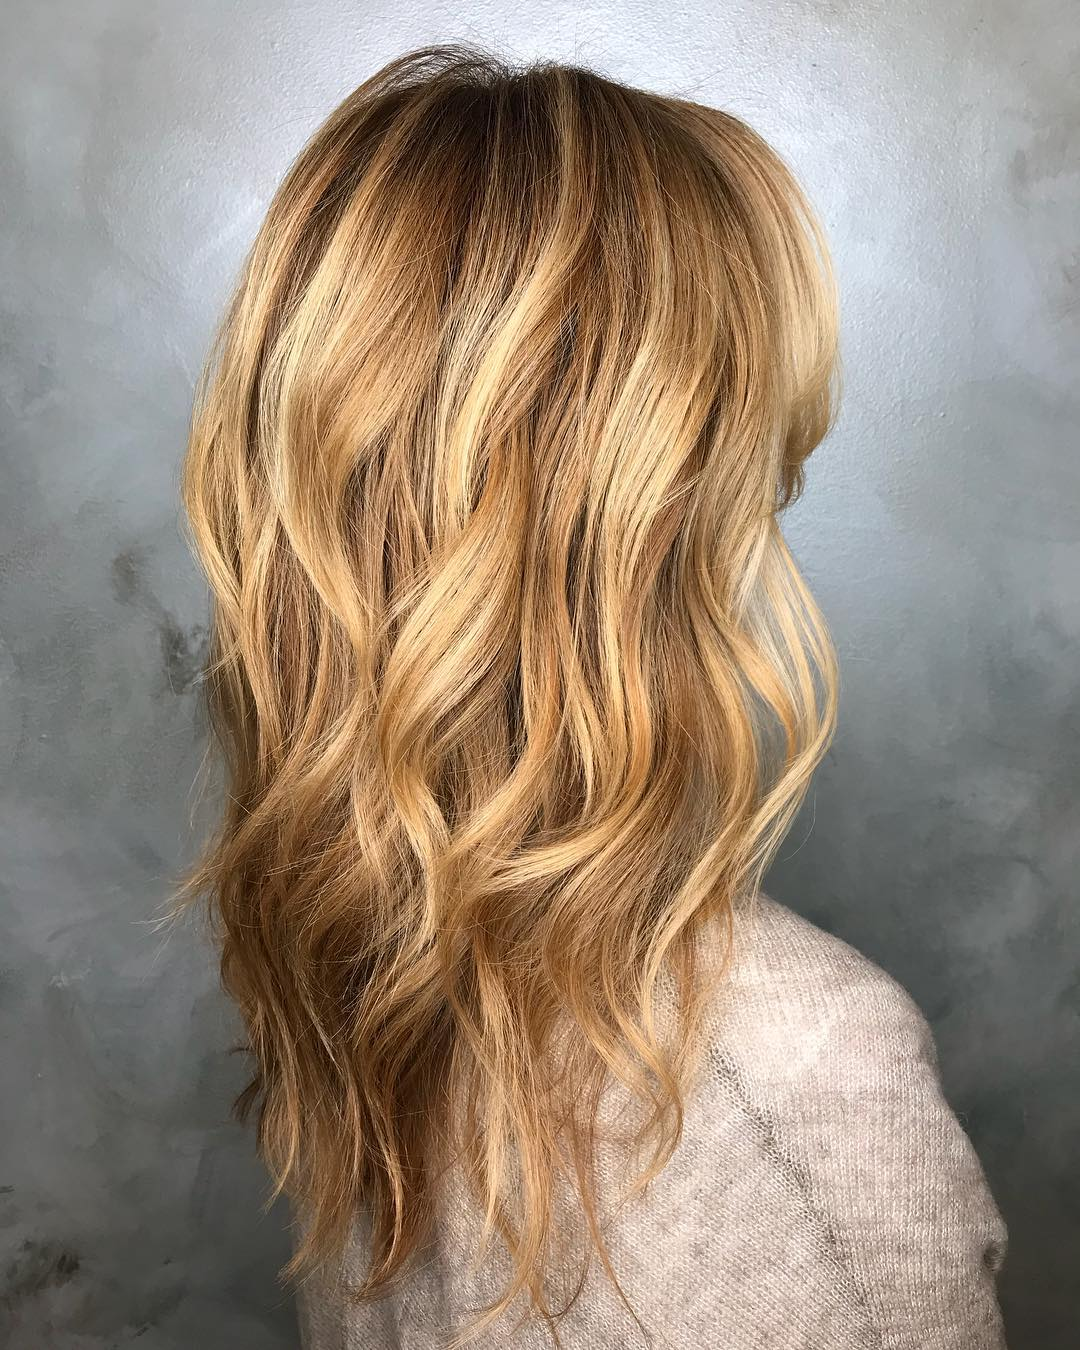 Layered Haircut with Waves and Highlights